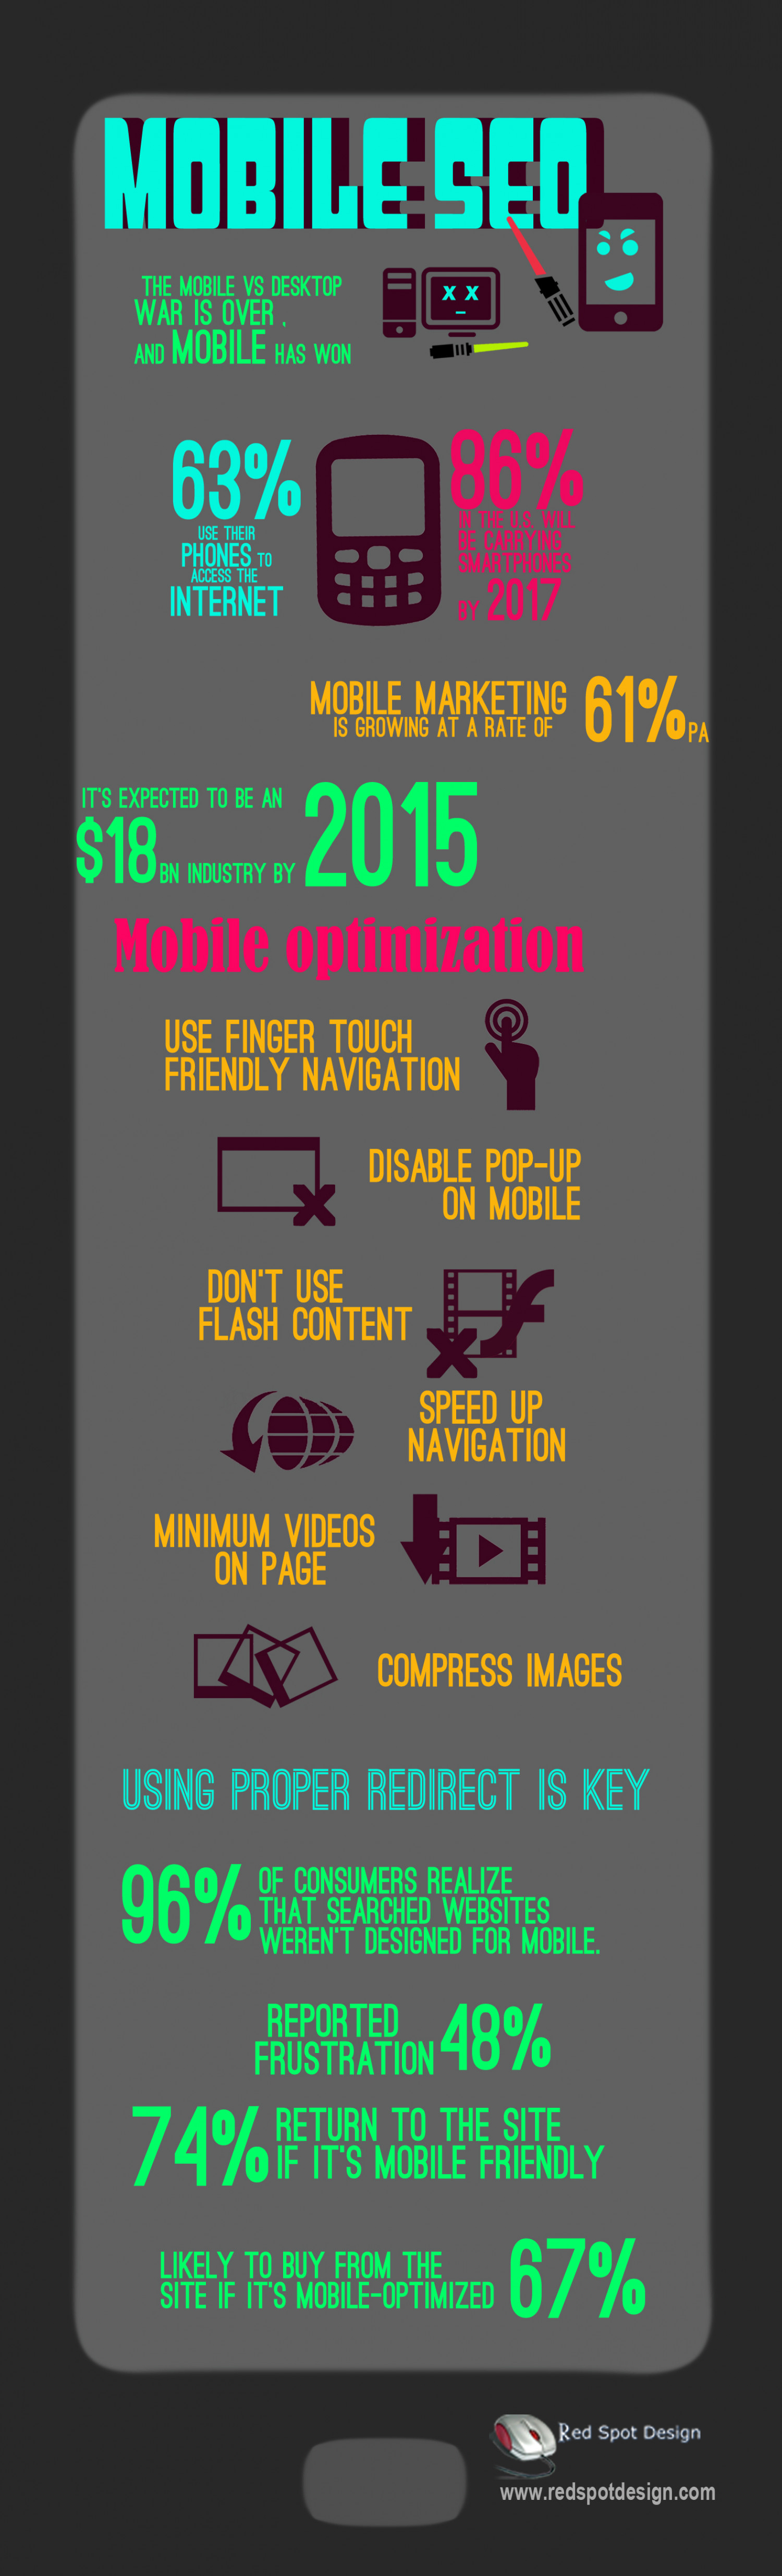 Mobile Seo Infographic